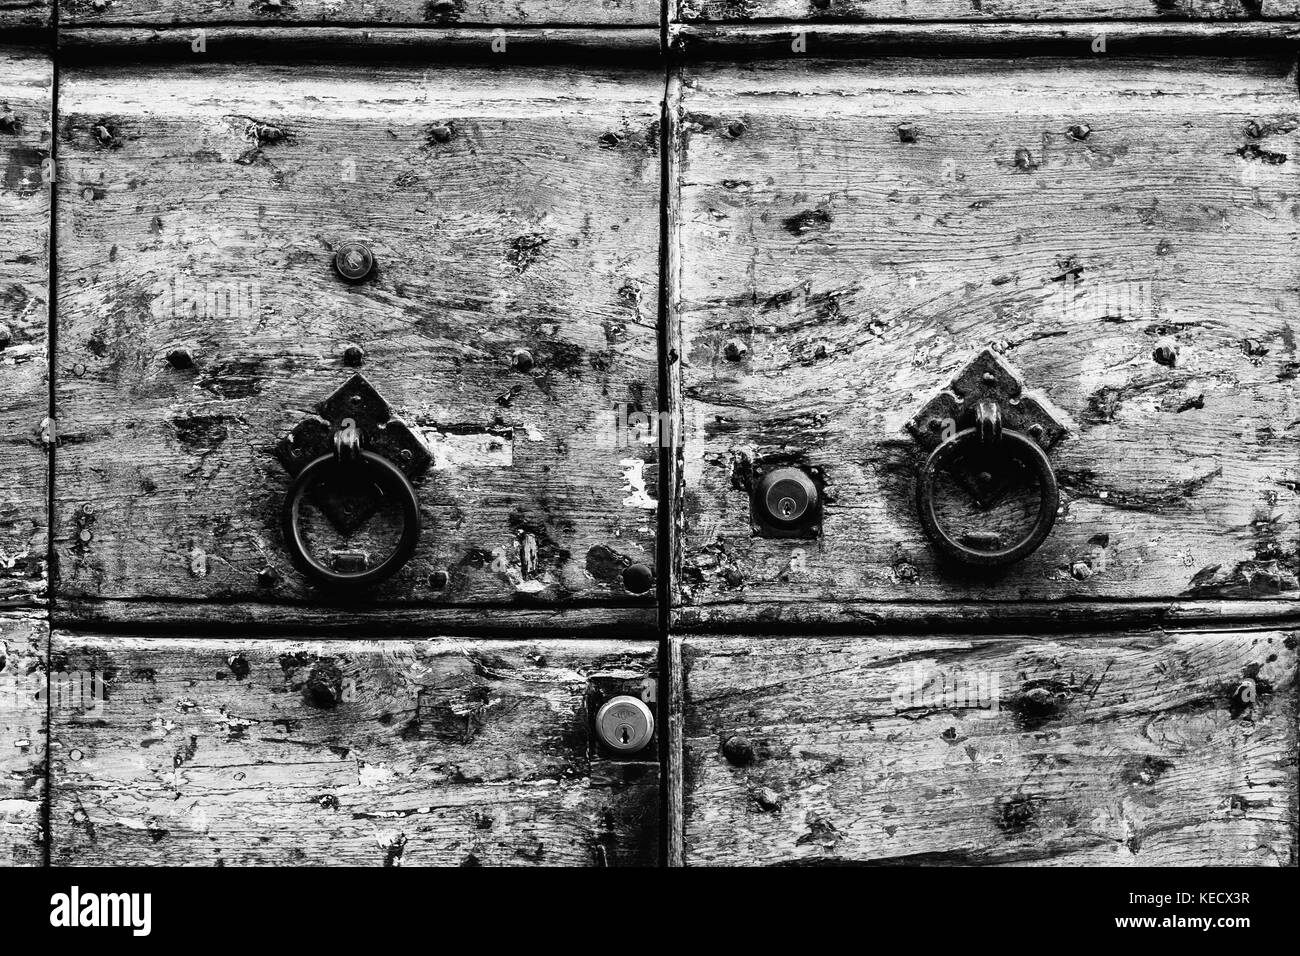 Detail from a worn wooden door in Rome, Italy - Stock Image